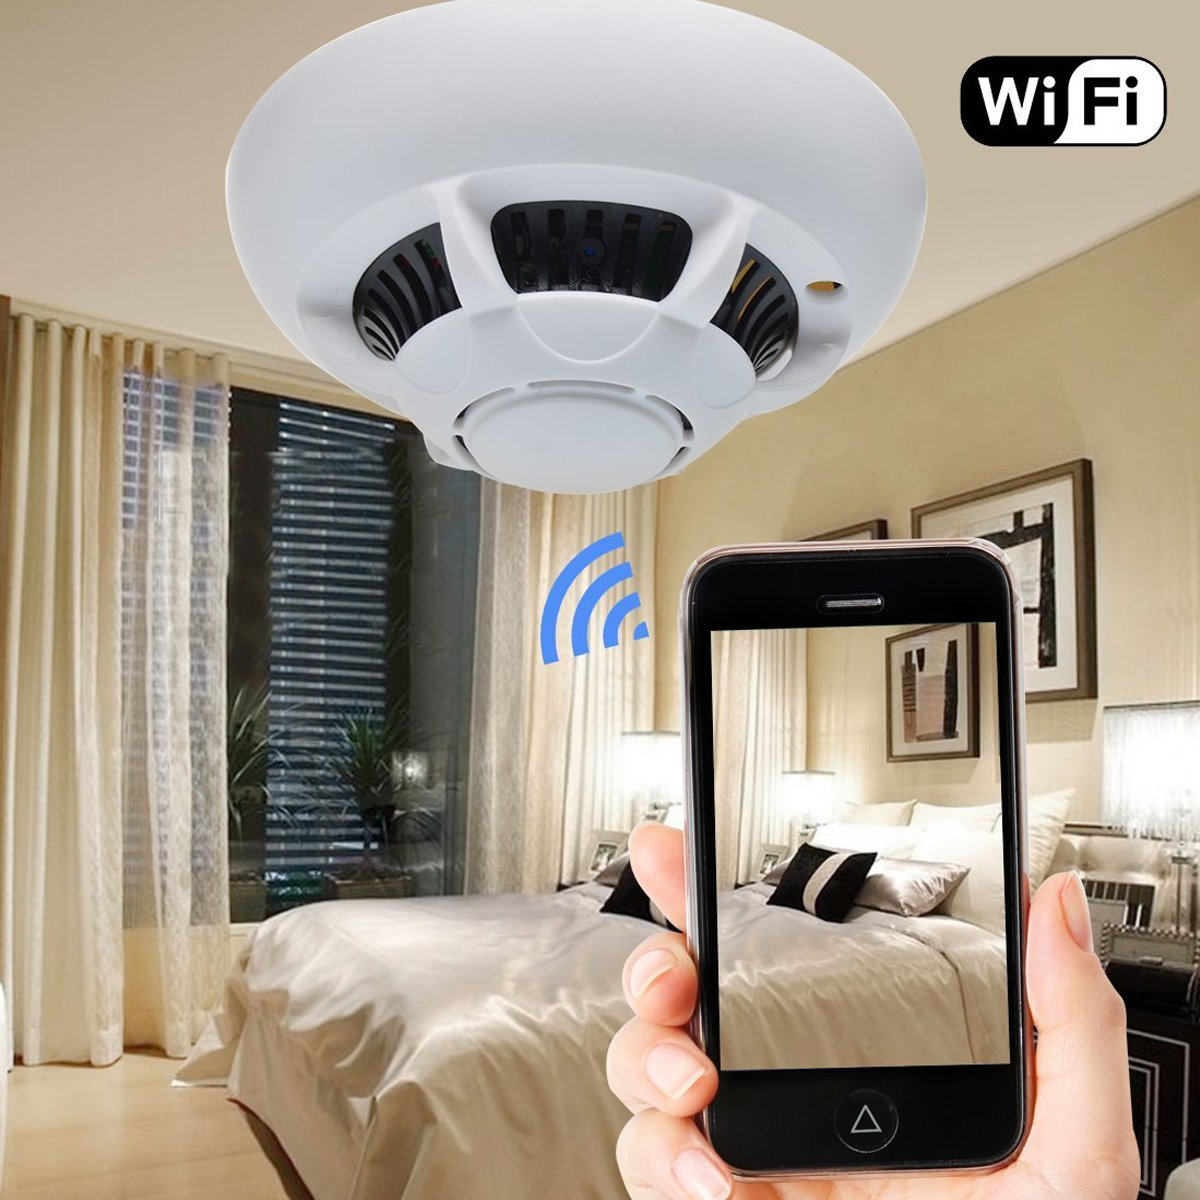 Amazon.com : Dreamclub WiFi Hidden Camera Smoke Detector Nanny Spy ...